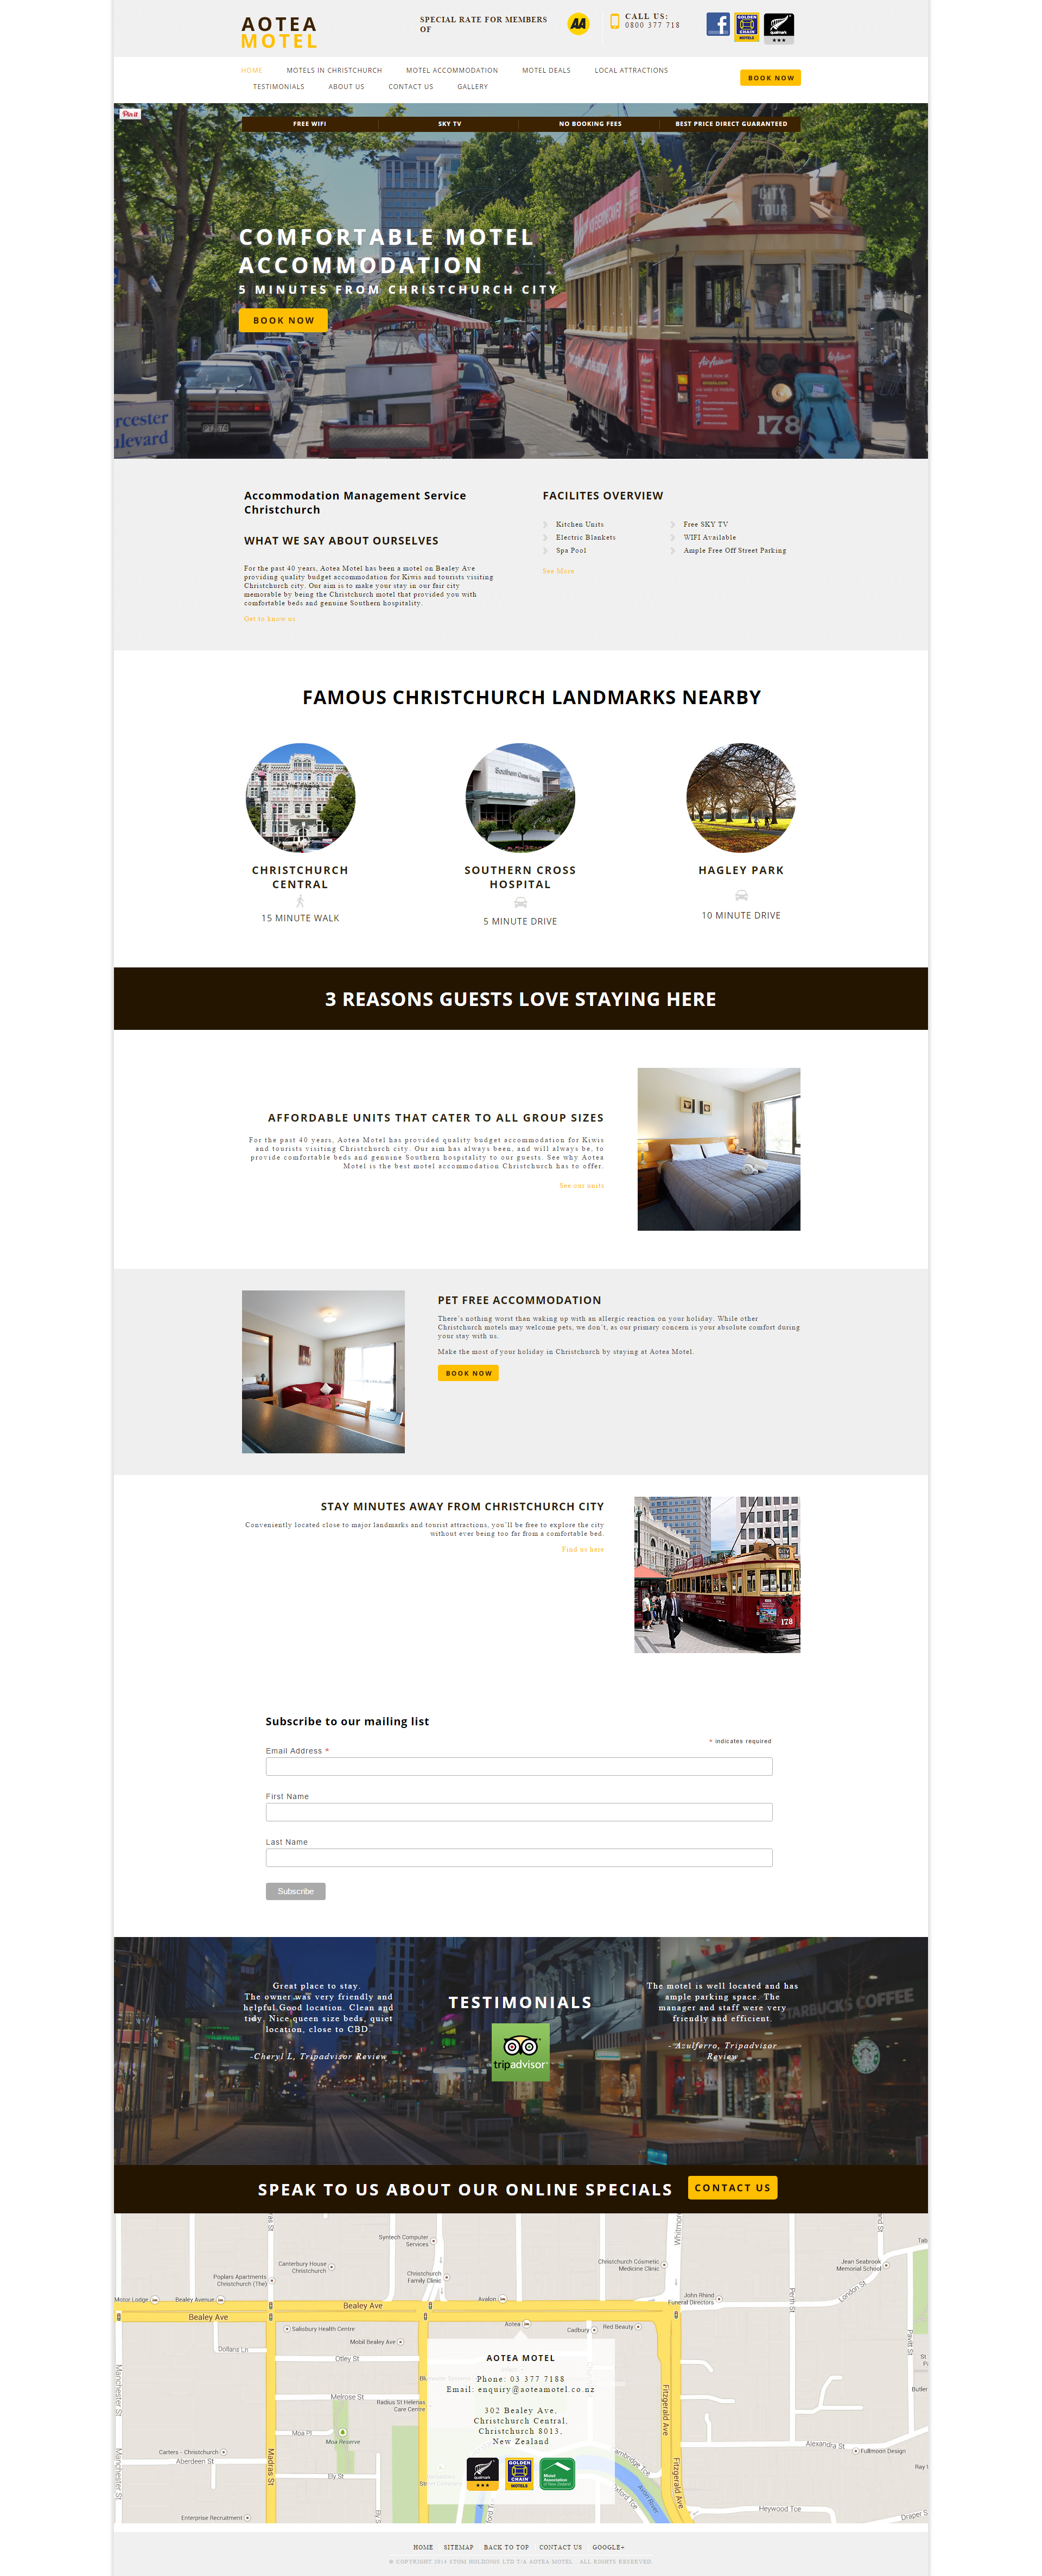 A Zeald Website Has Helped Aotea Motel Hhttp Www Aoteamotel Co Nz To Achieve Their Business Dream Vi Website Redesign Website Design Website Optimization